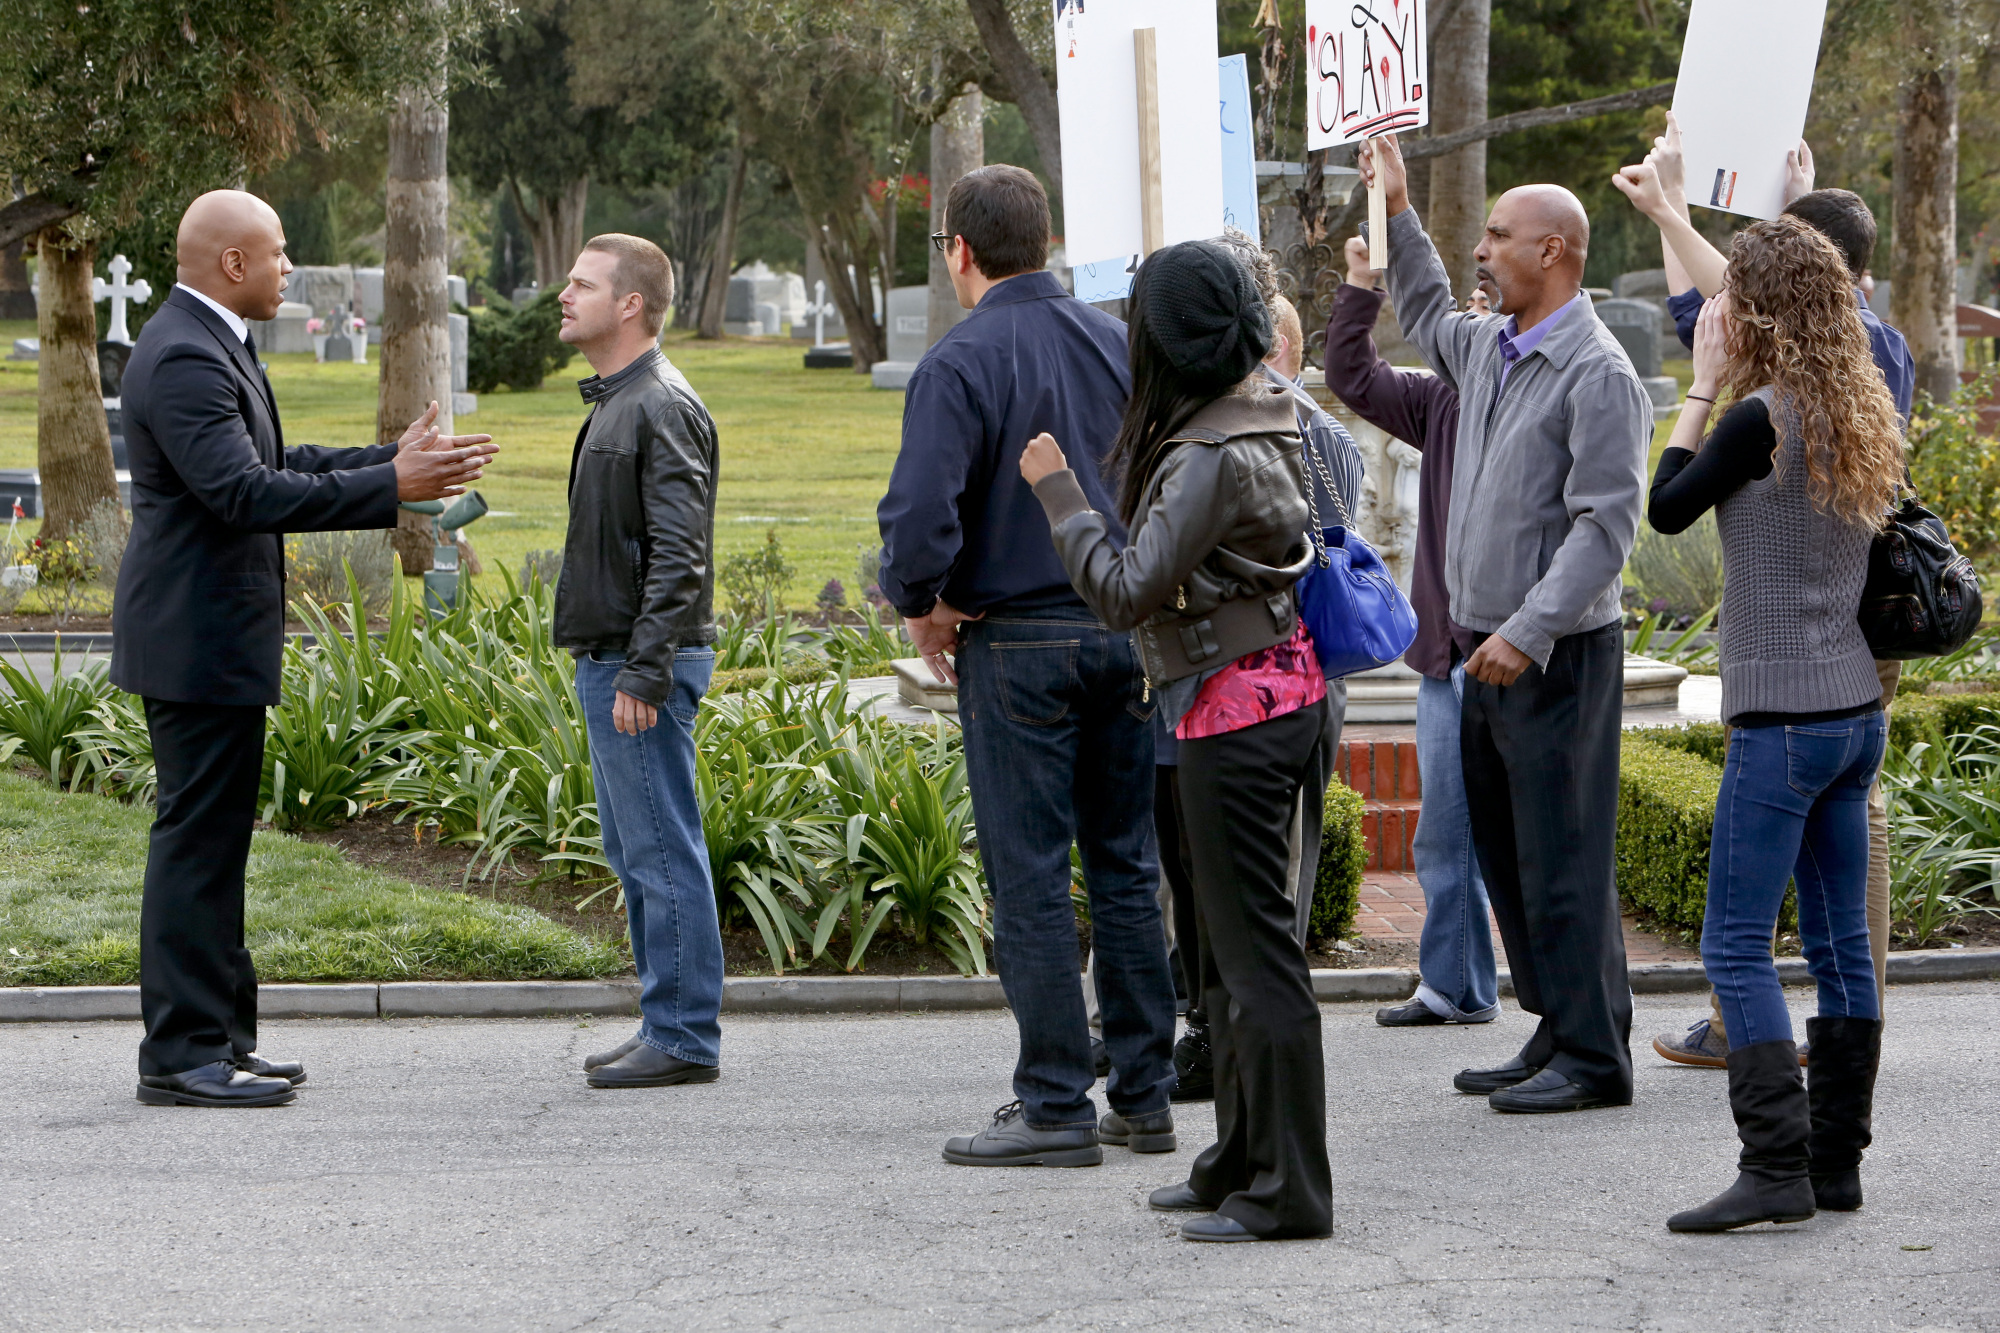 NCIS: LOS ANGELES - Season 4 - Episode 20